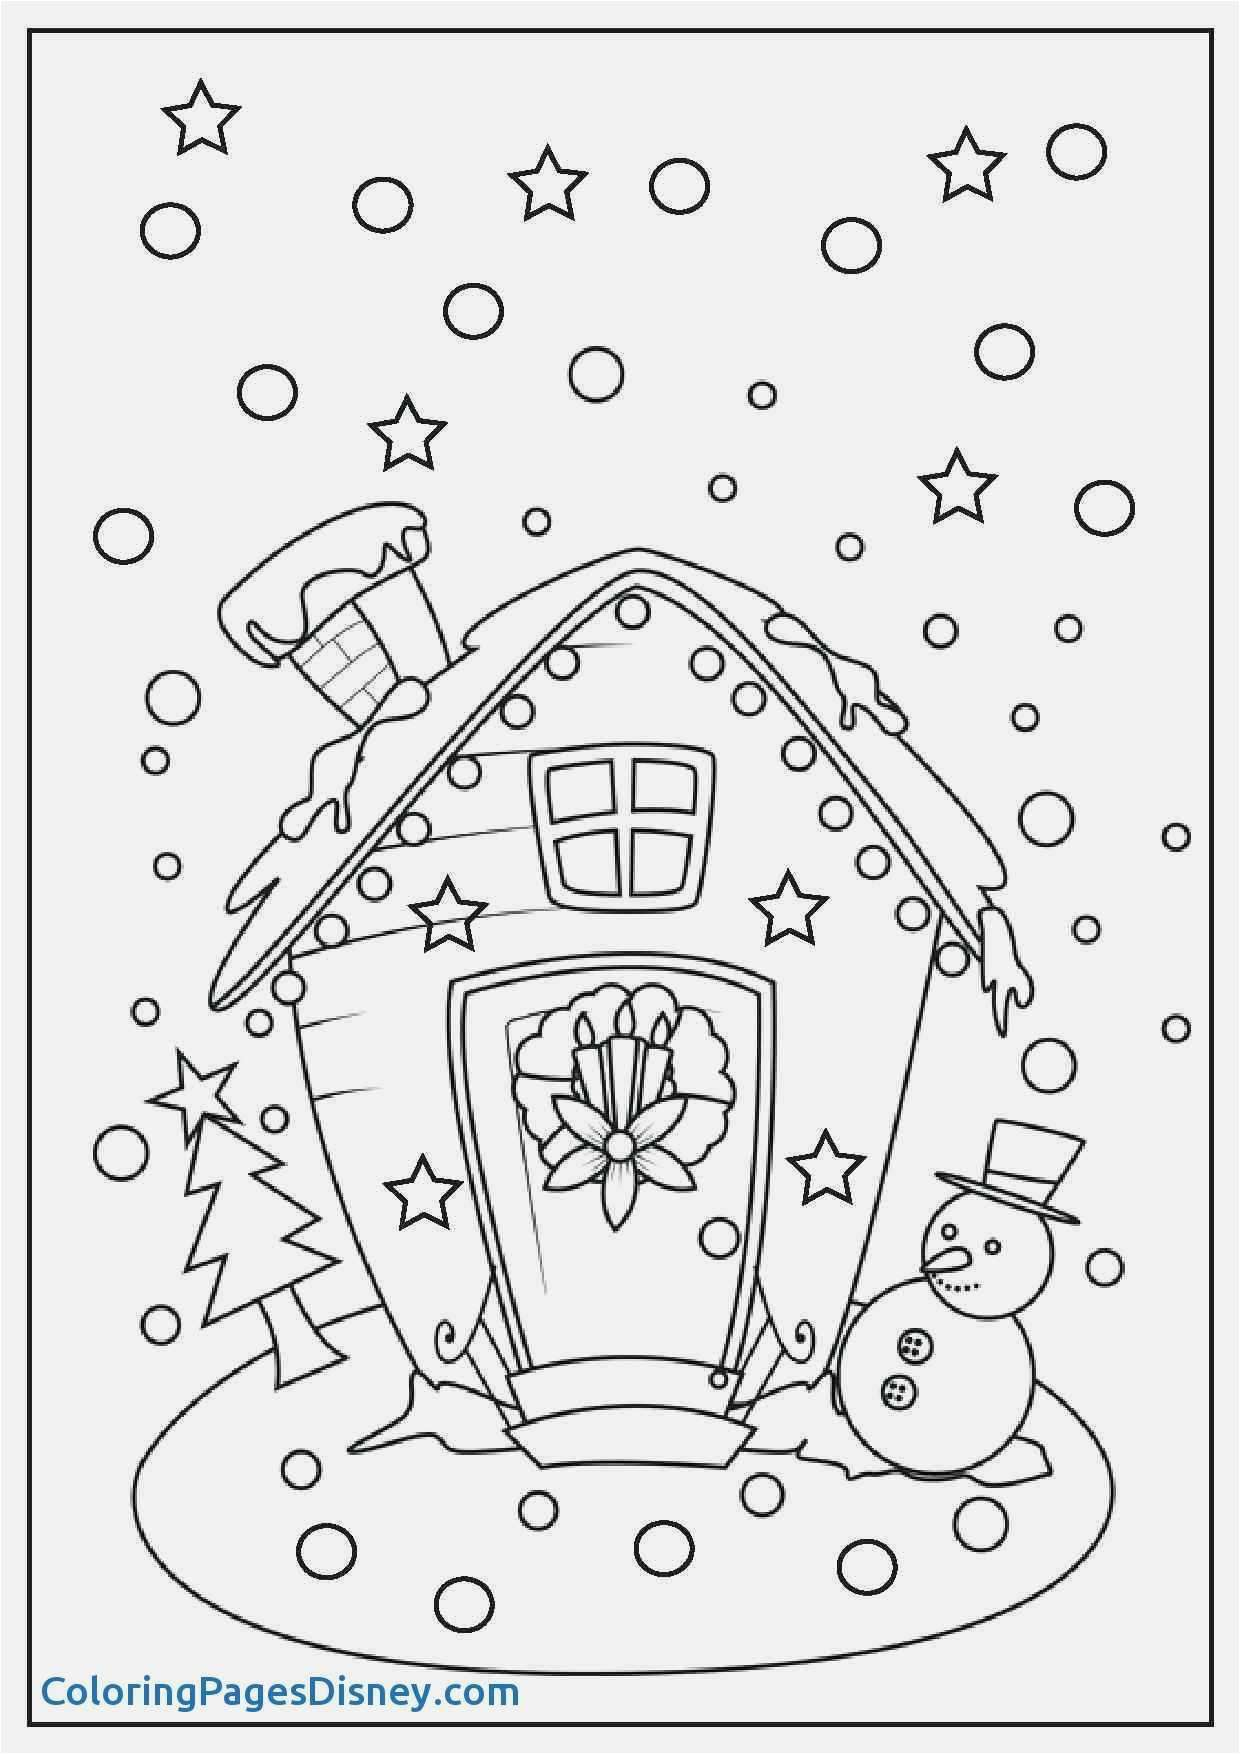 Disney Princess Christmas Coloring Pages Printable With 25 Best Free Download Picture